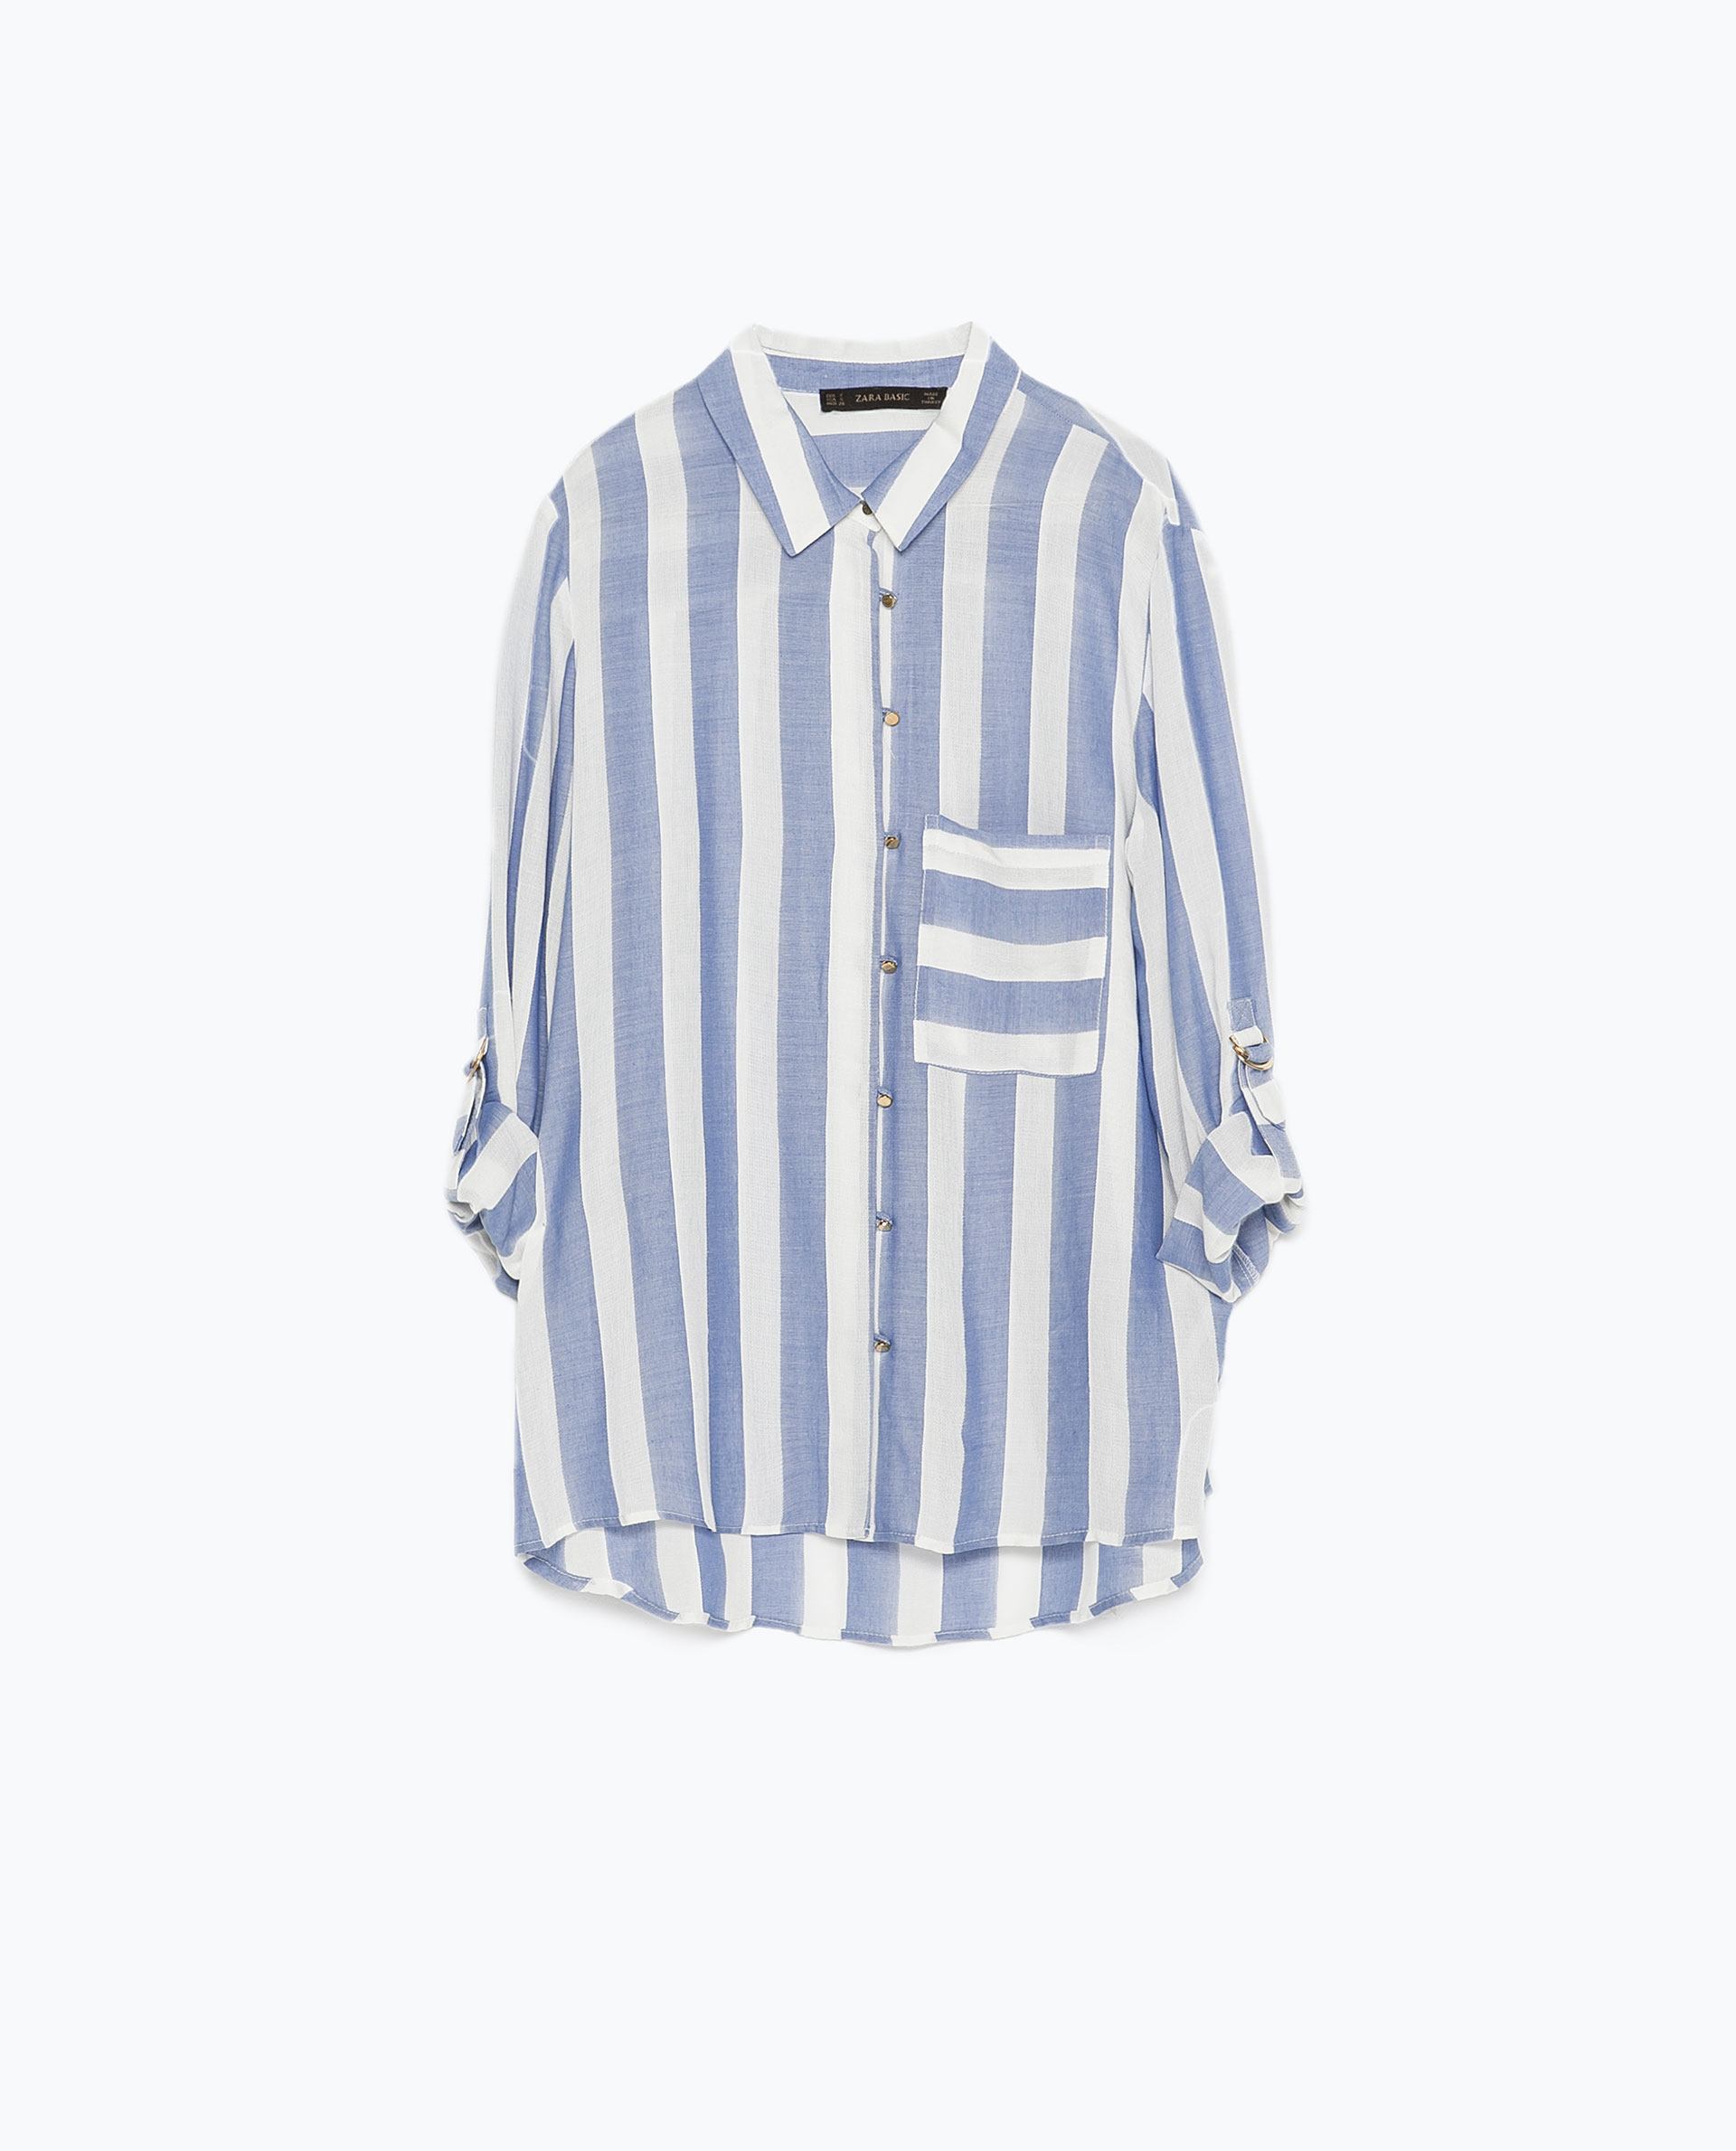 Zara Blue Wide Striped Shirt in Blue | Lyst